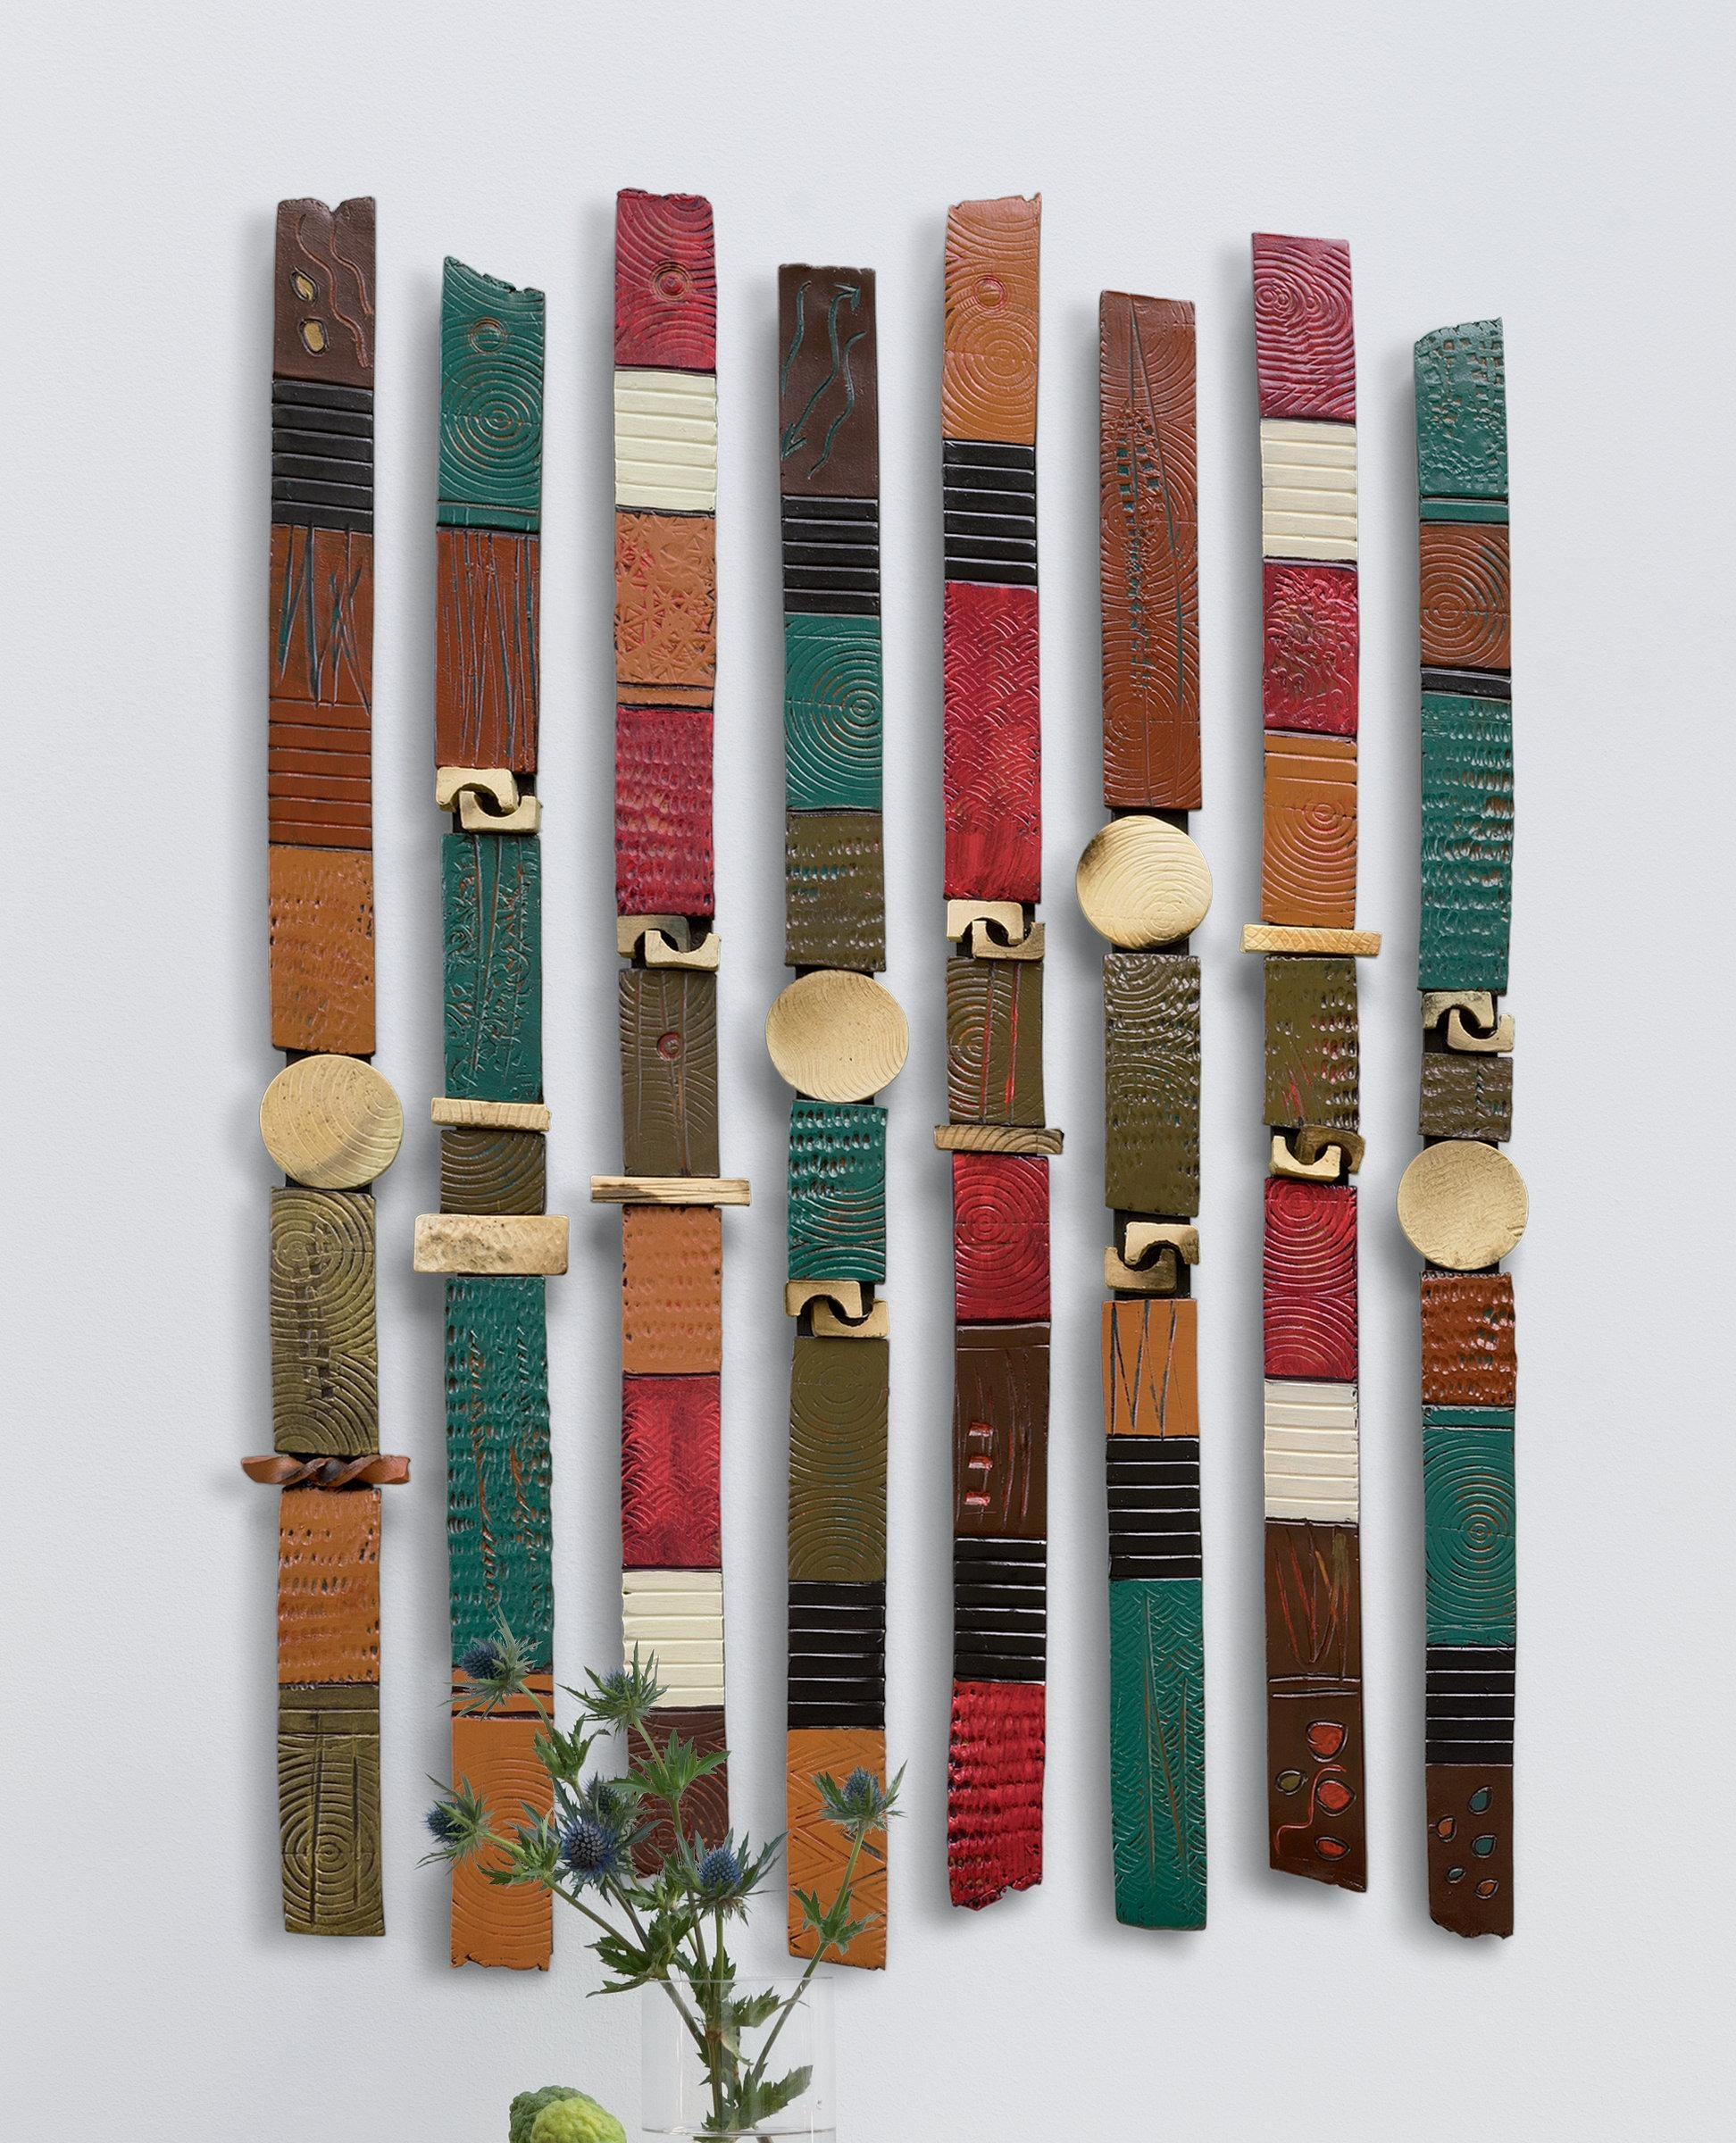 Story Sticksrhonda Cearlock (Ceramic Wall Sculpture) | Artful Home Within Large Ceramic Wall Art (View 4 of 20)